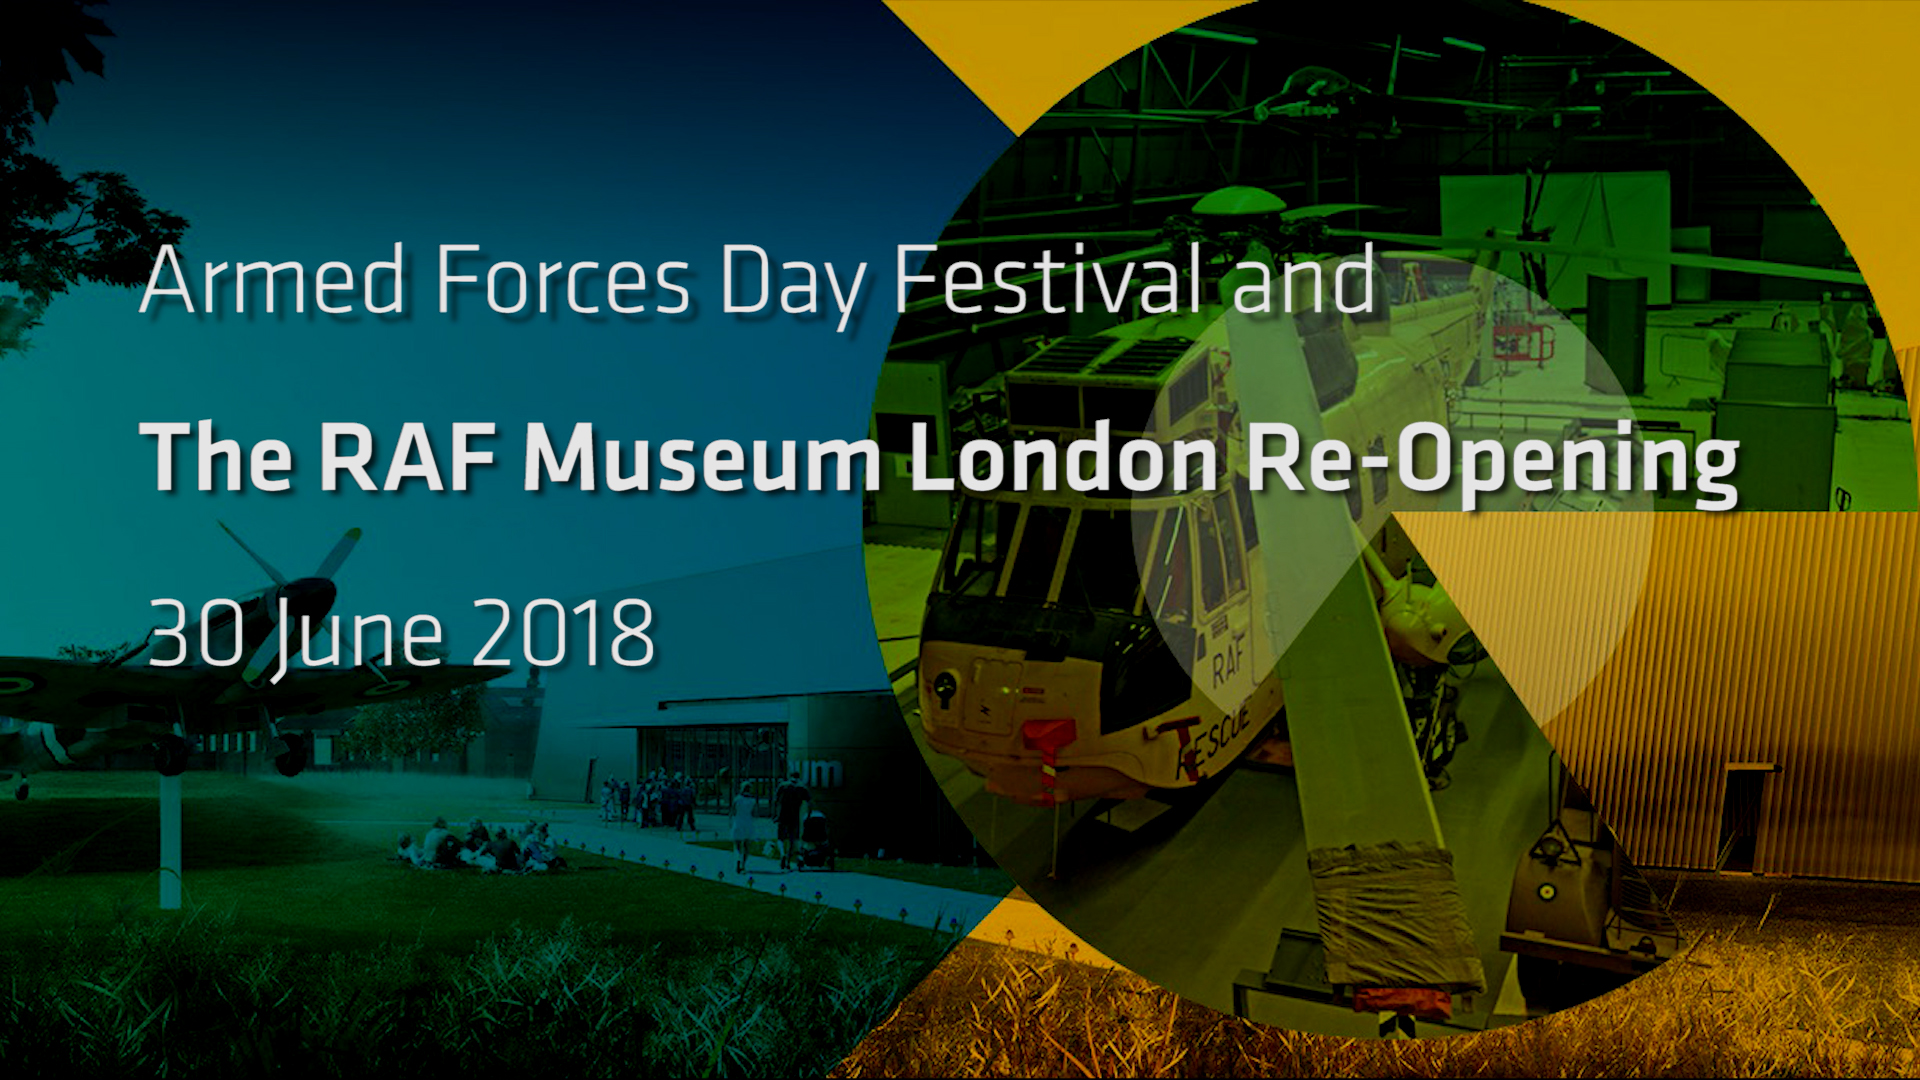 Armed Forces Day Festival and the Grand Re-Opening of the RAF Museum London